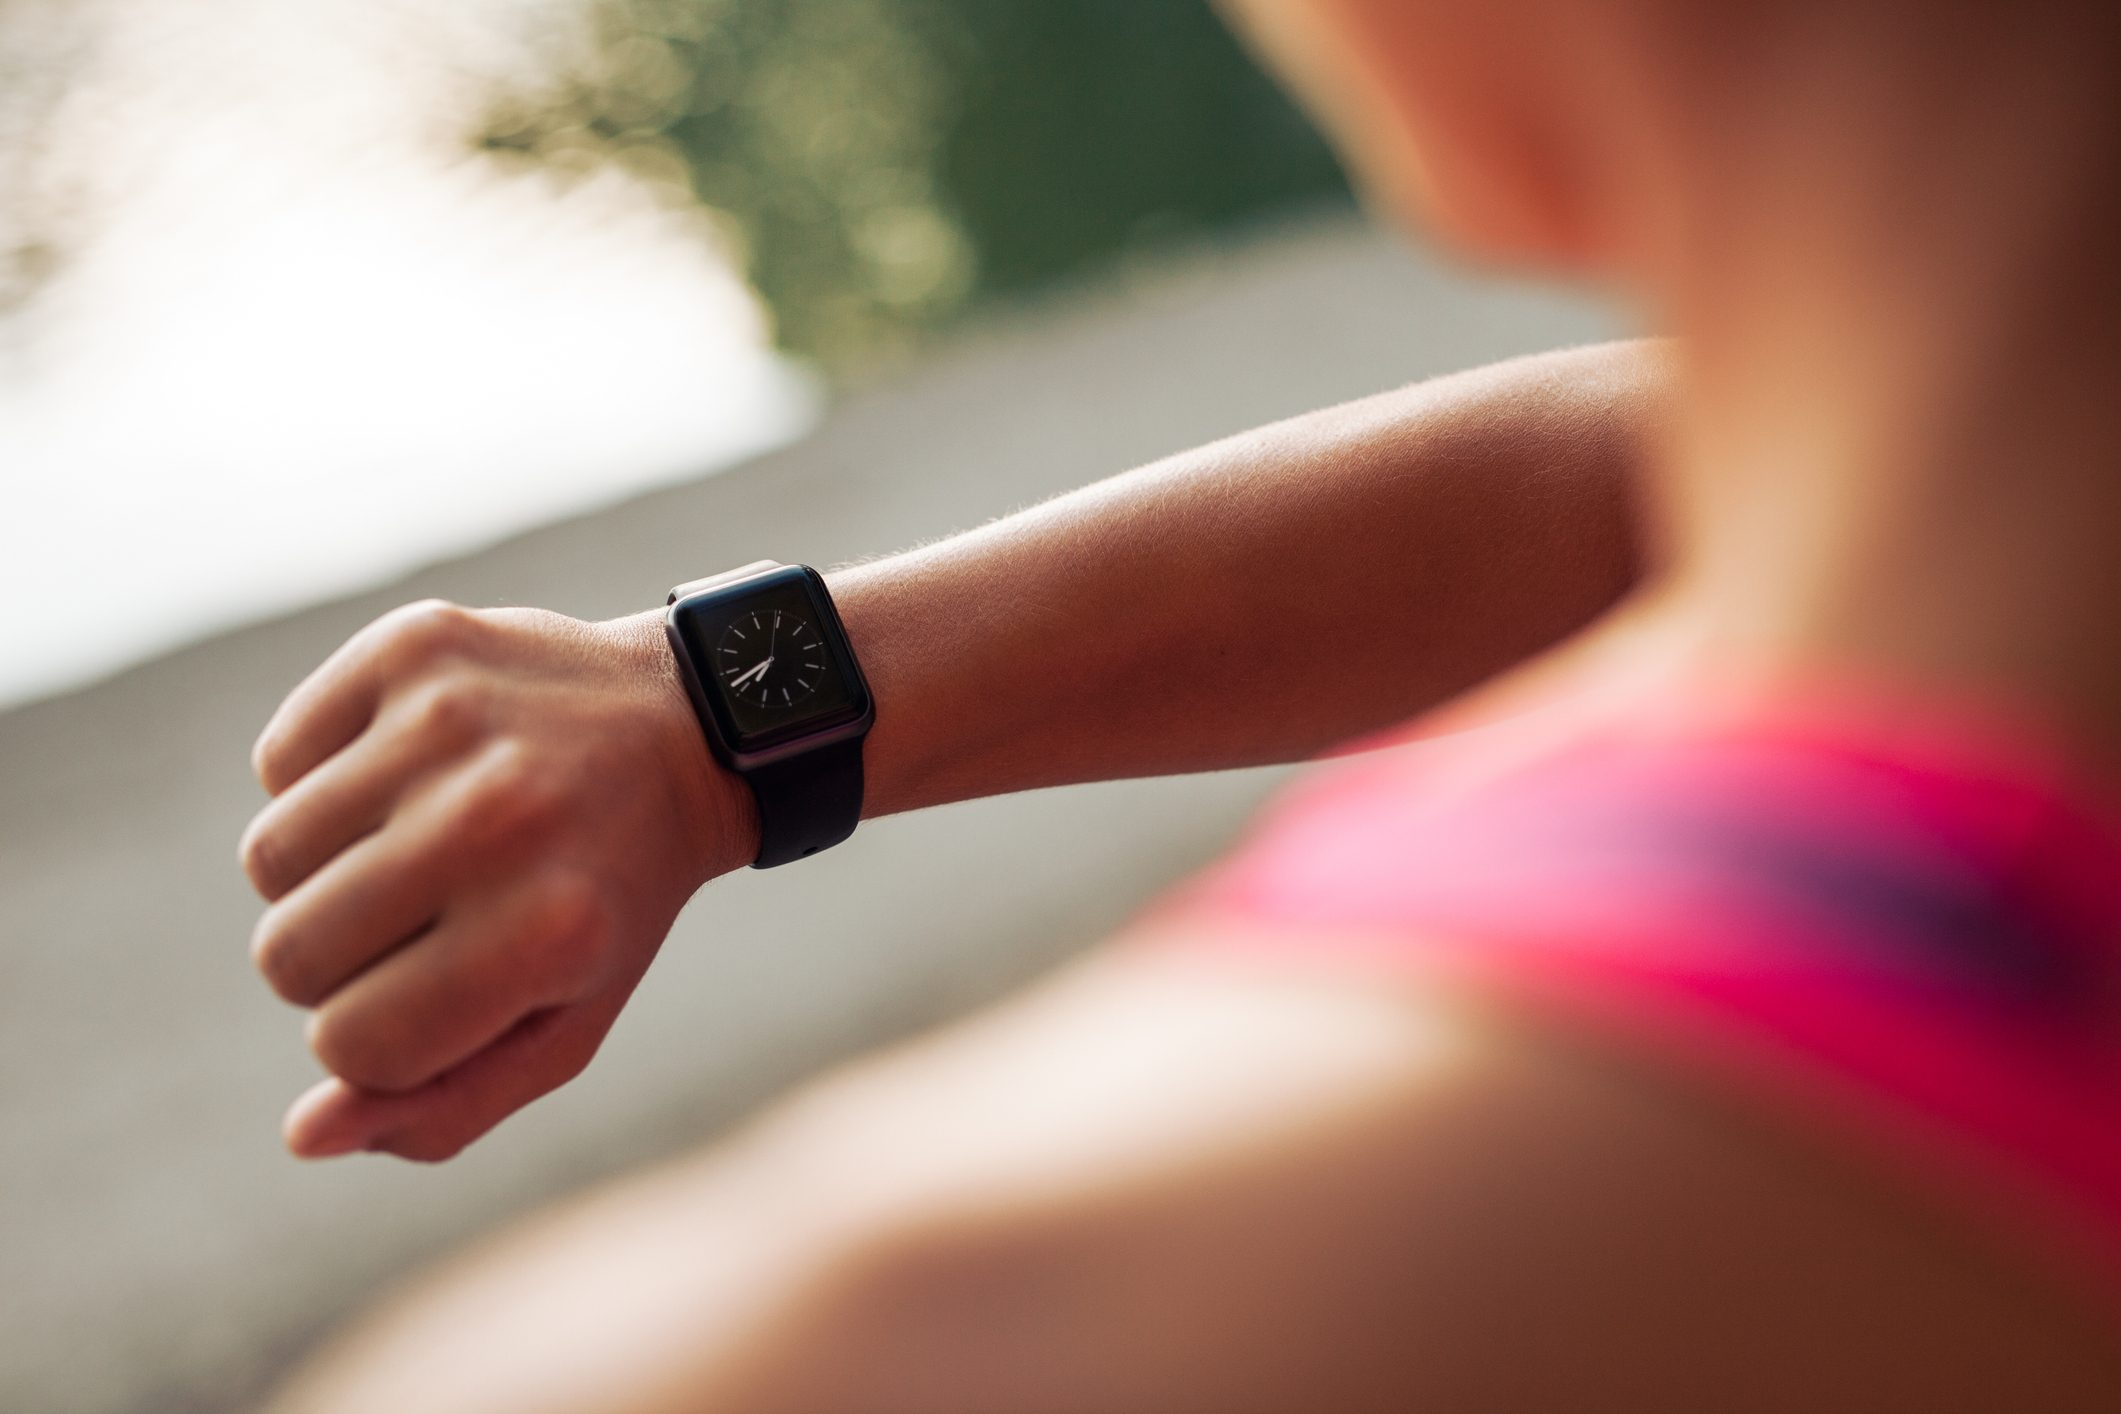 woman checking time on watch while exercising